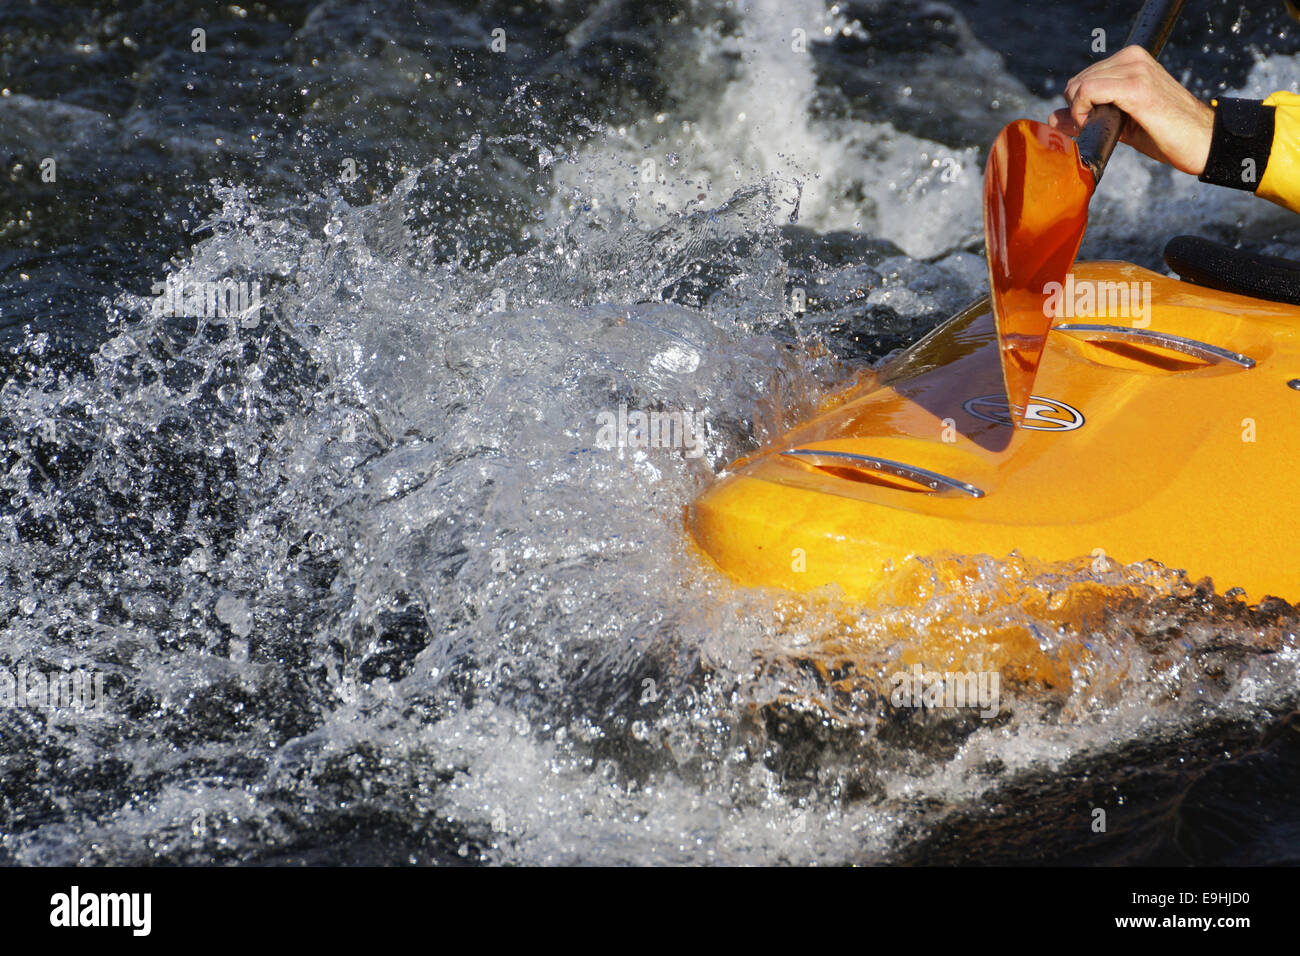 The whitewater park in Hohenlimburg, Germany - Stock Image